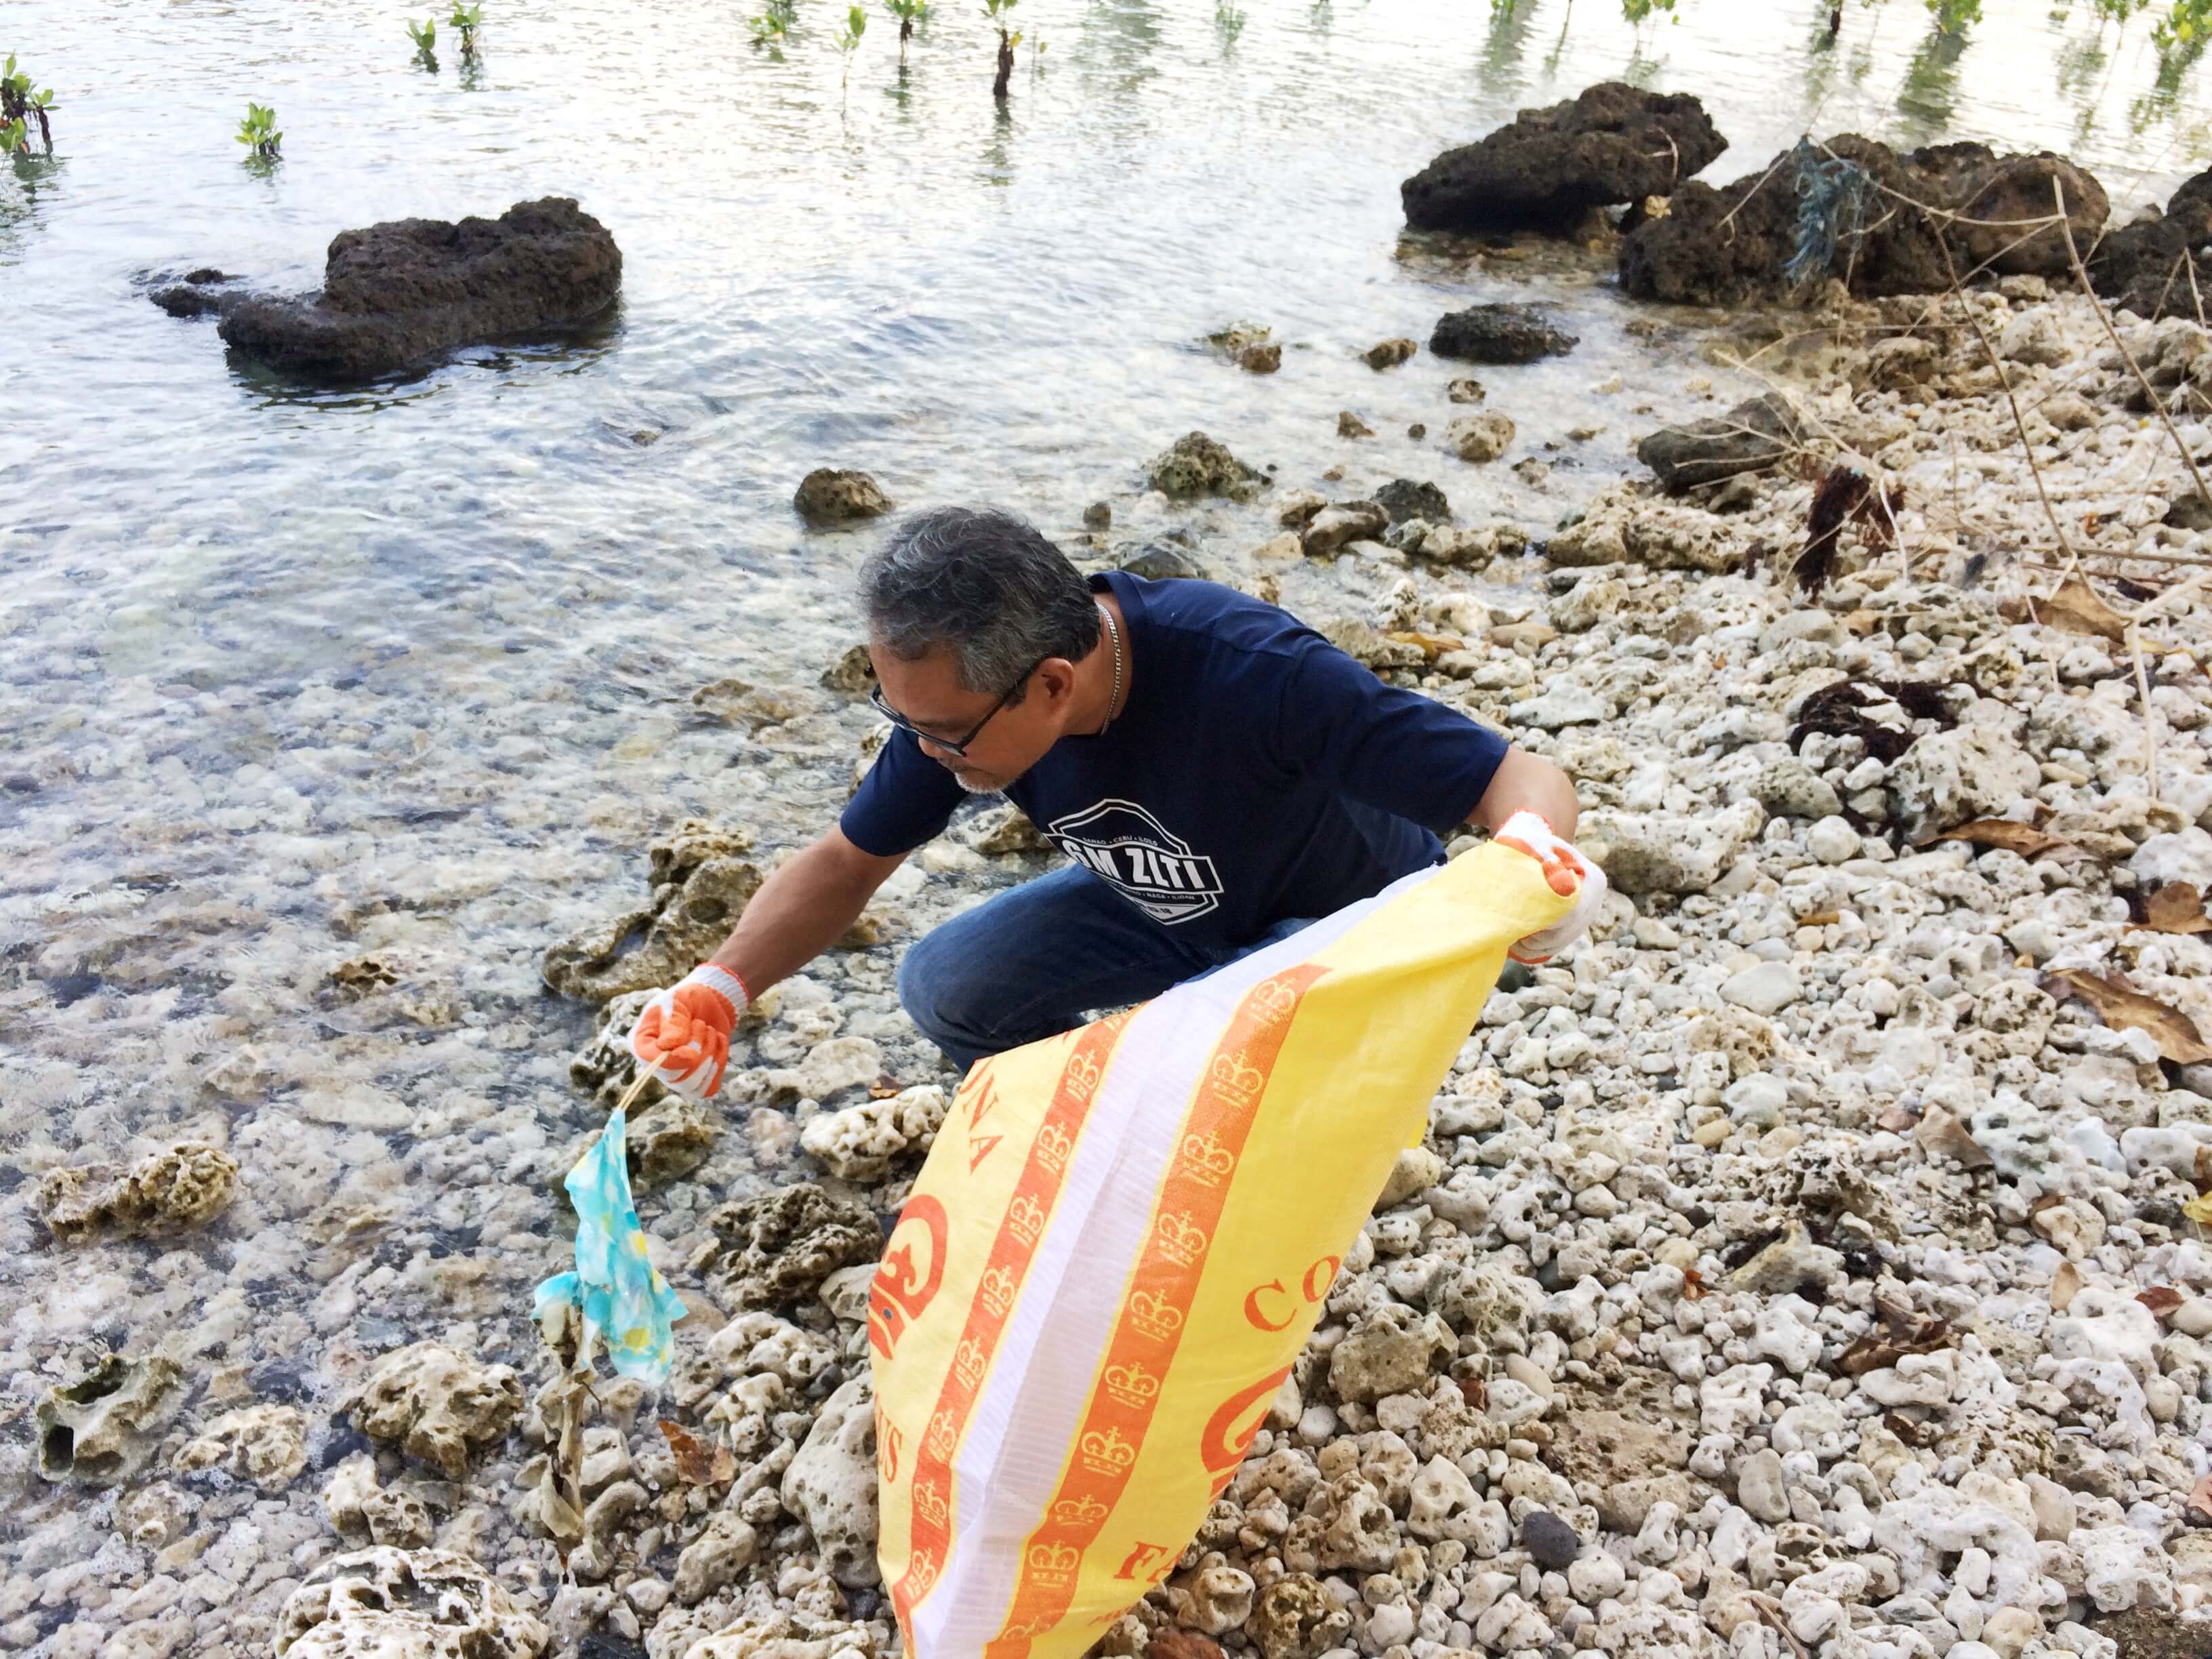 Phoenix Petroleum protects marine life, joins international coastal cleanup day